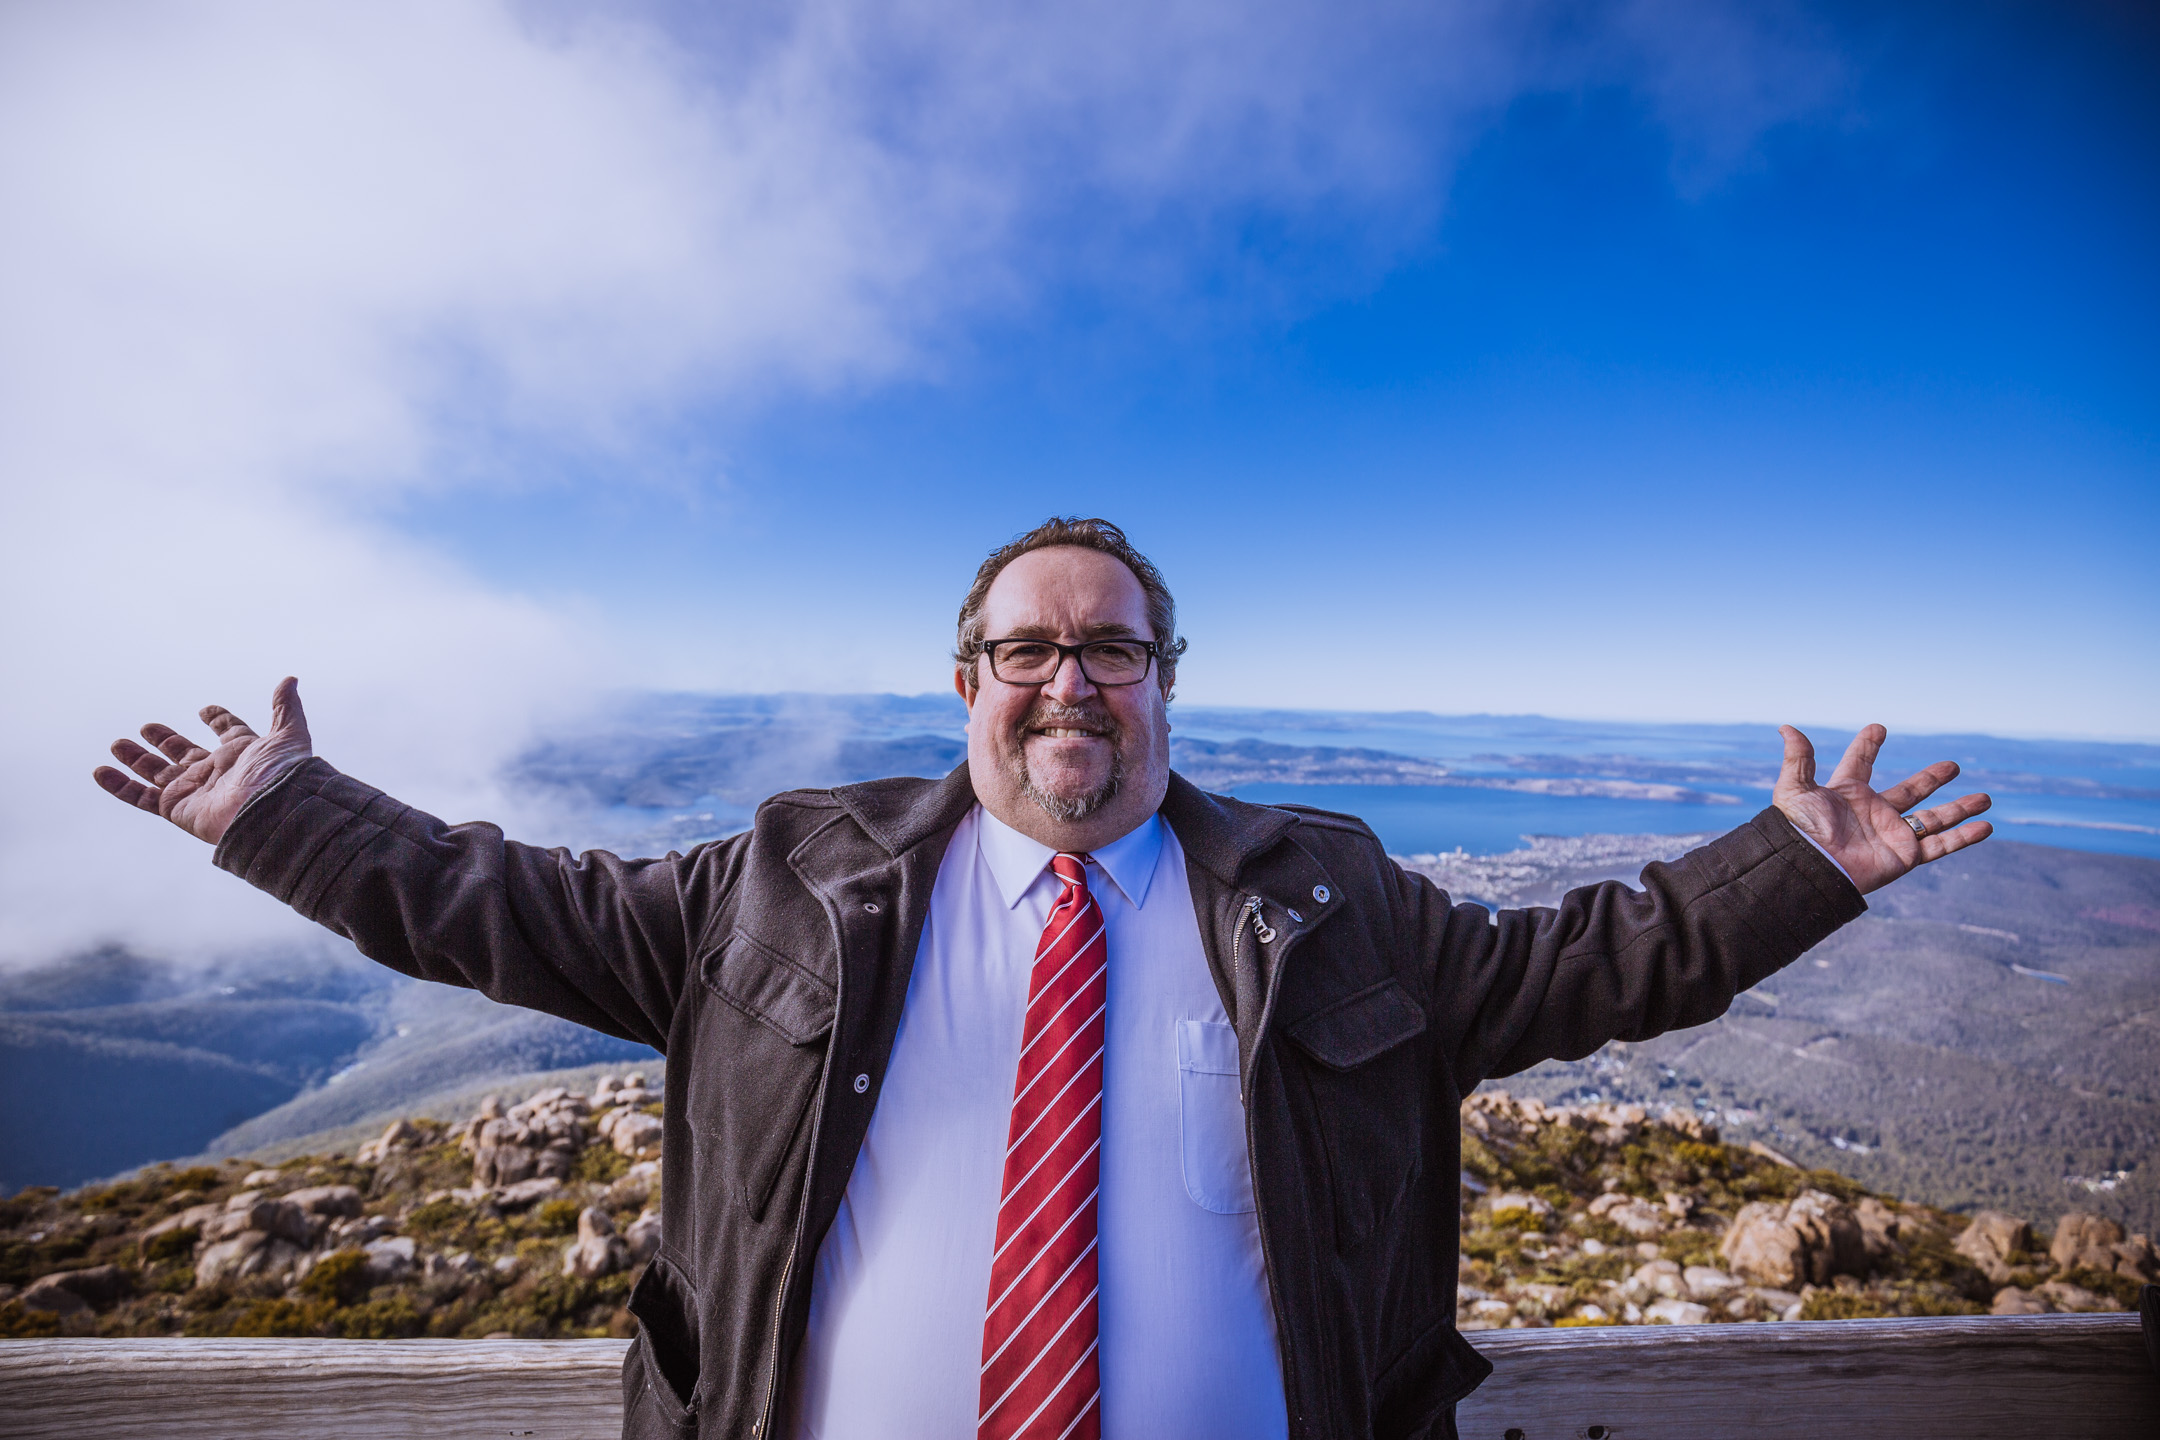 MOVING ON: Former Launceston alderman Darren Alexander has announced he will run as Hobart City Council's Lord Mayor and alderman. Picture: Beetle Black Media